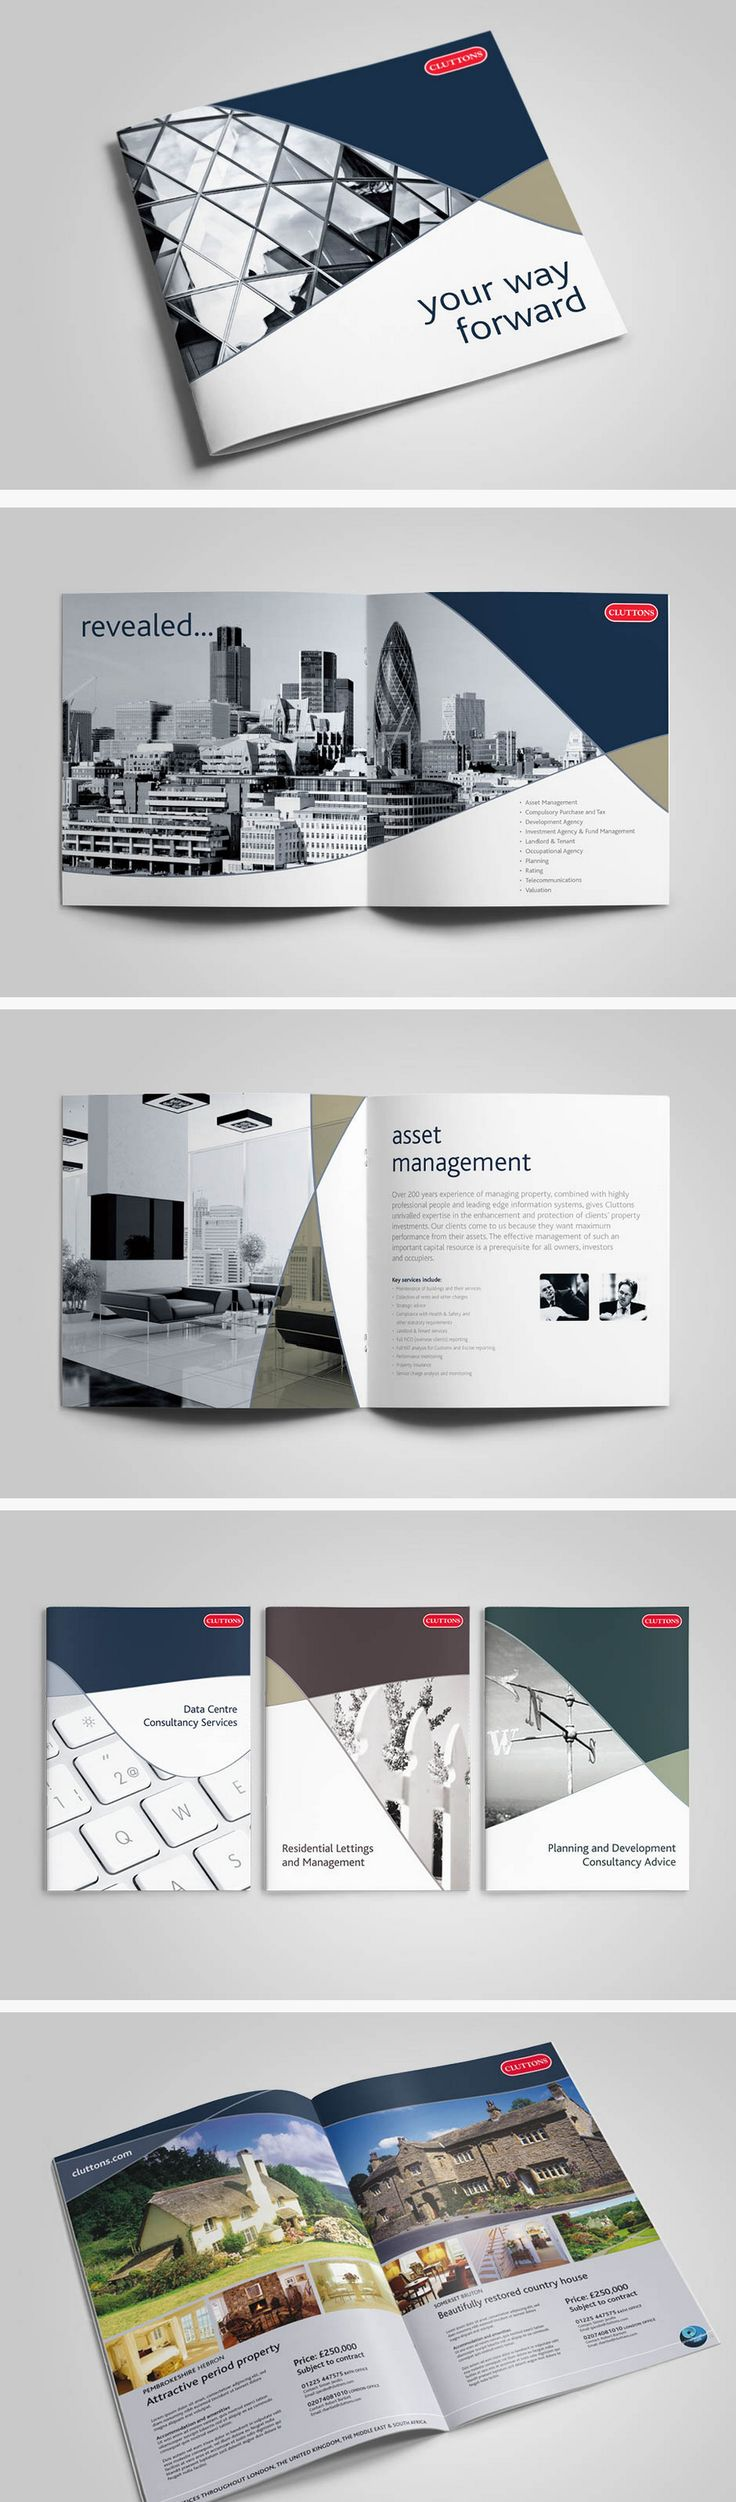 Branded brochure and print collateral system for an international firm of chartered surveyors and property consultants.  #Brochure #GraphicDesign